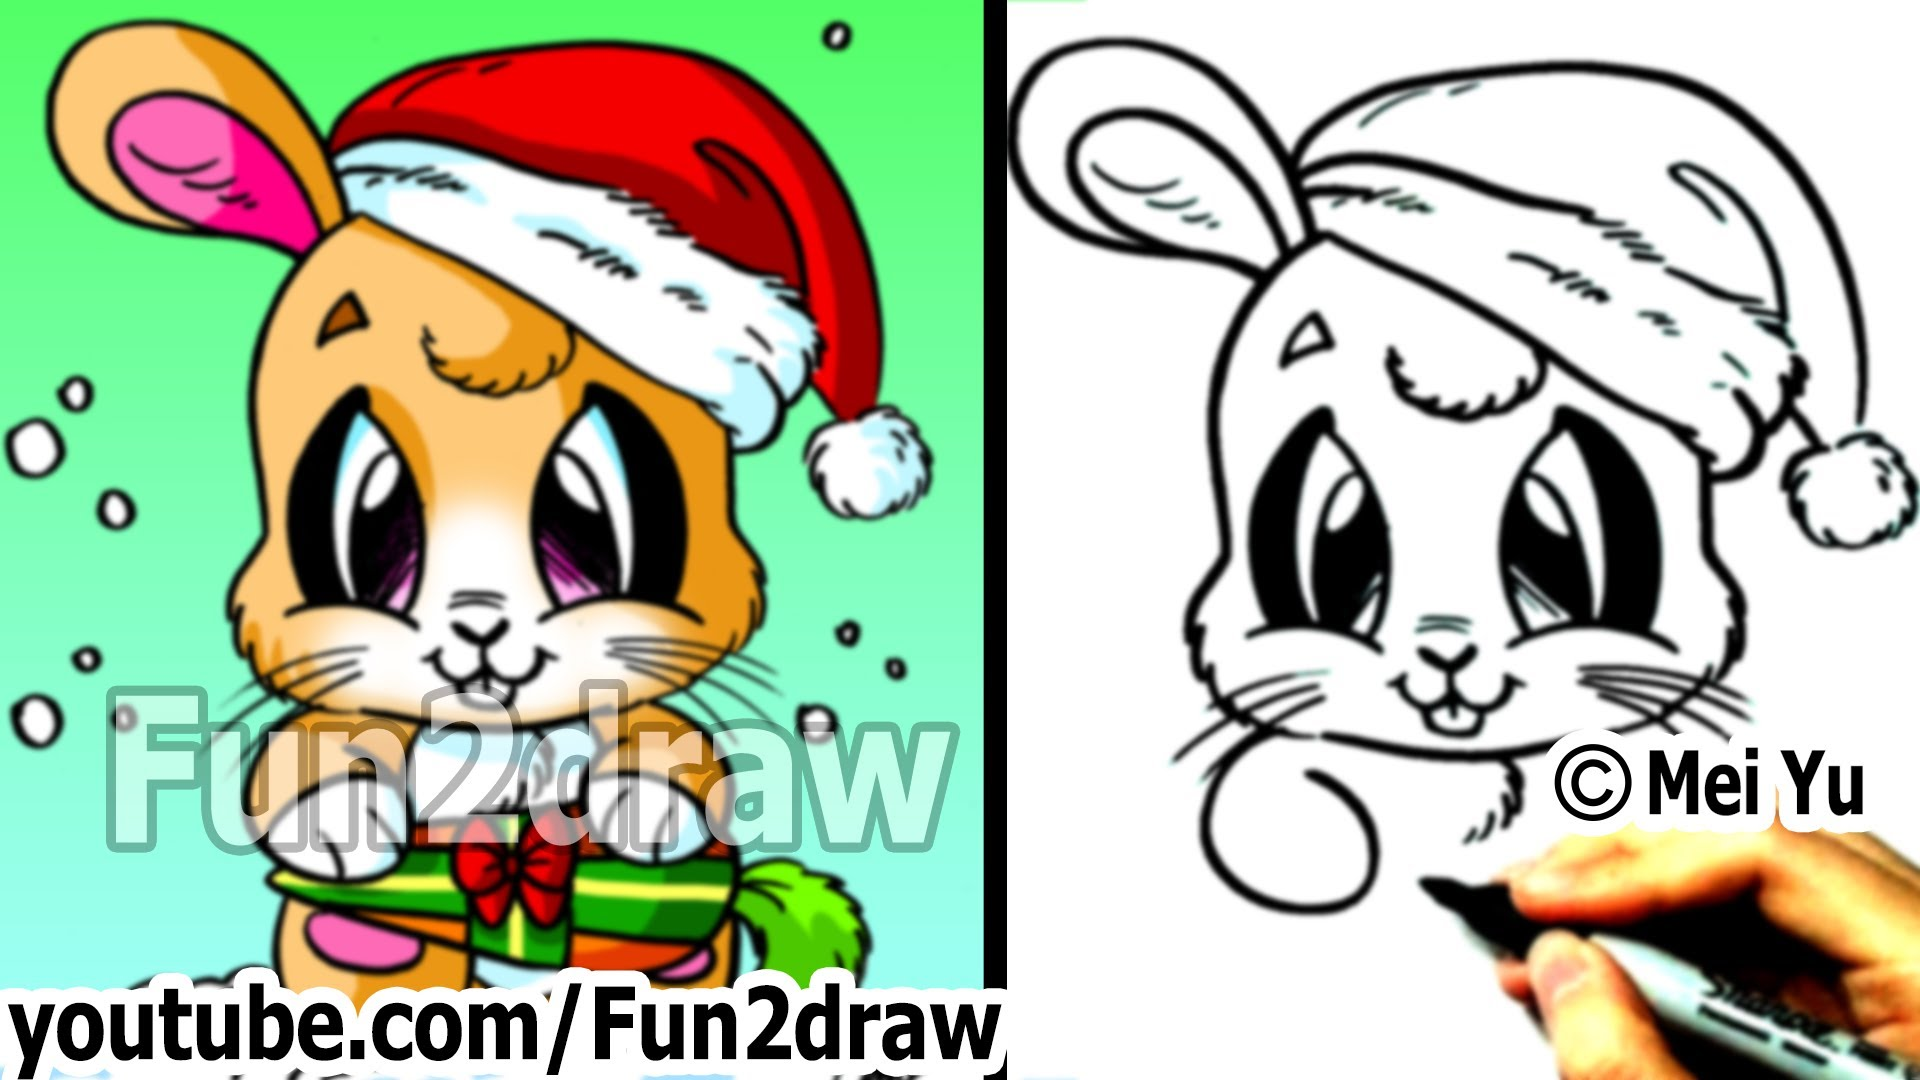 Drawn puppy fun christmas Santa How Time from Christmas